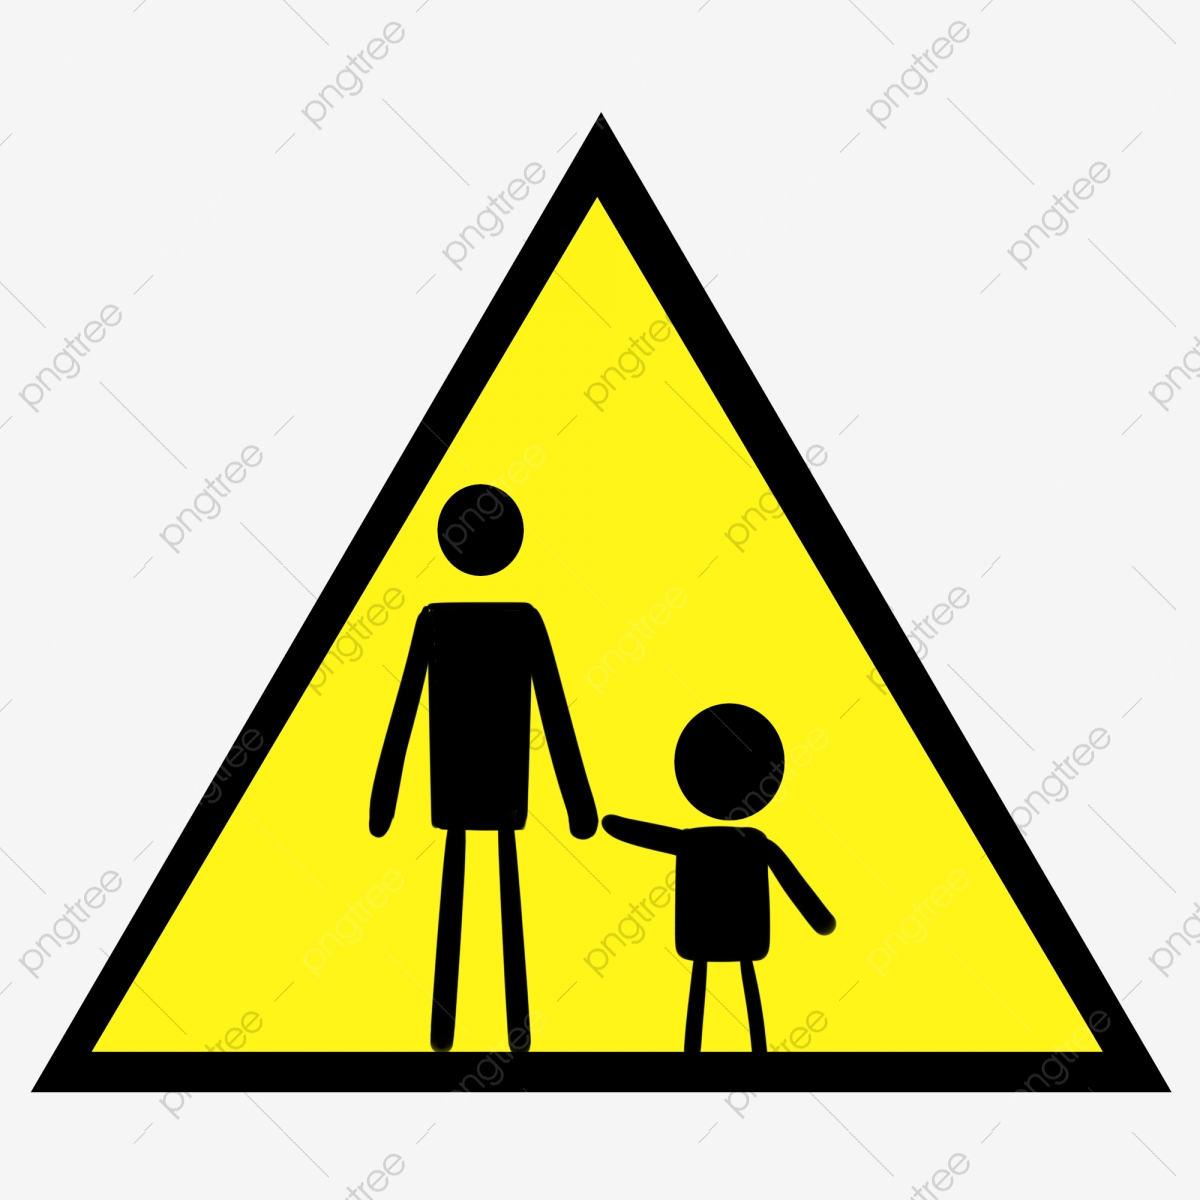 Attention Signs Clip Art